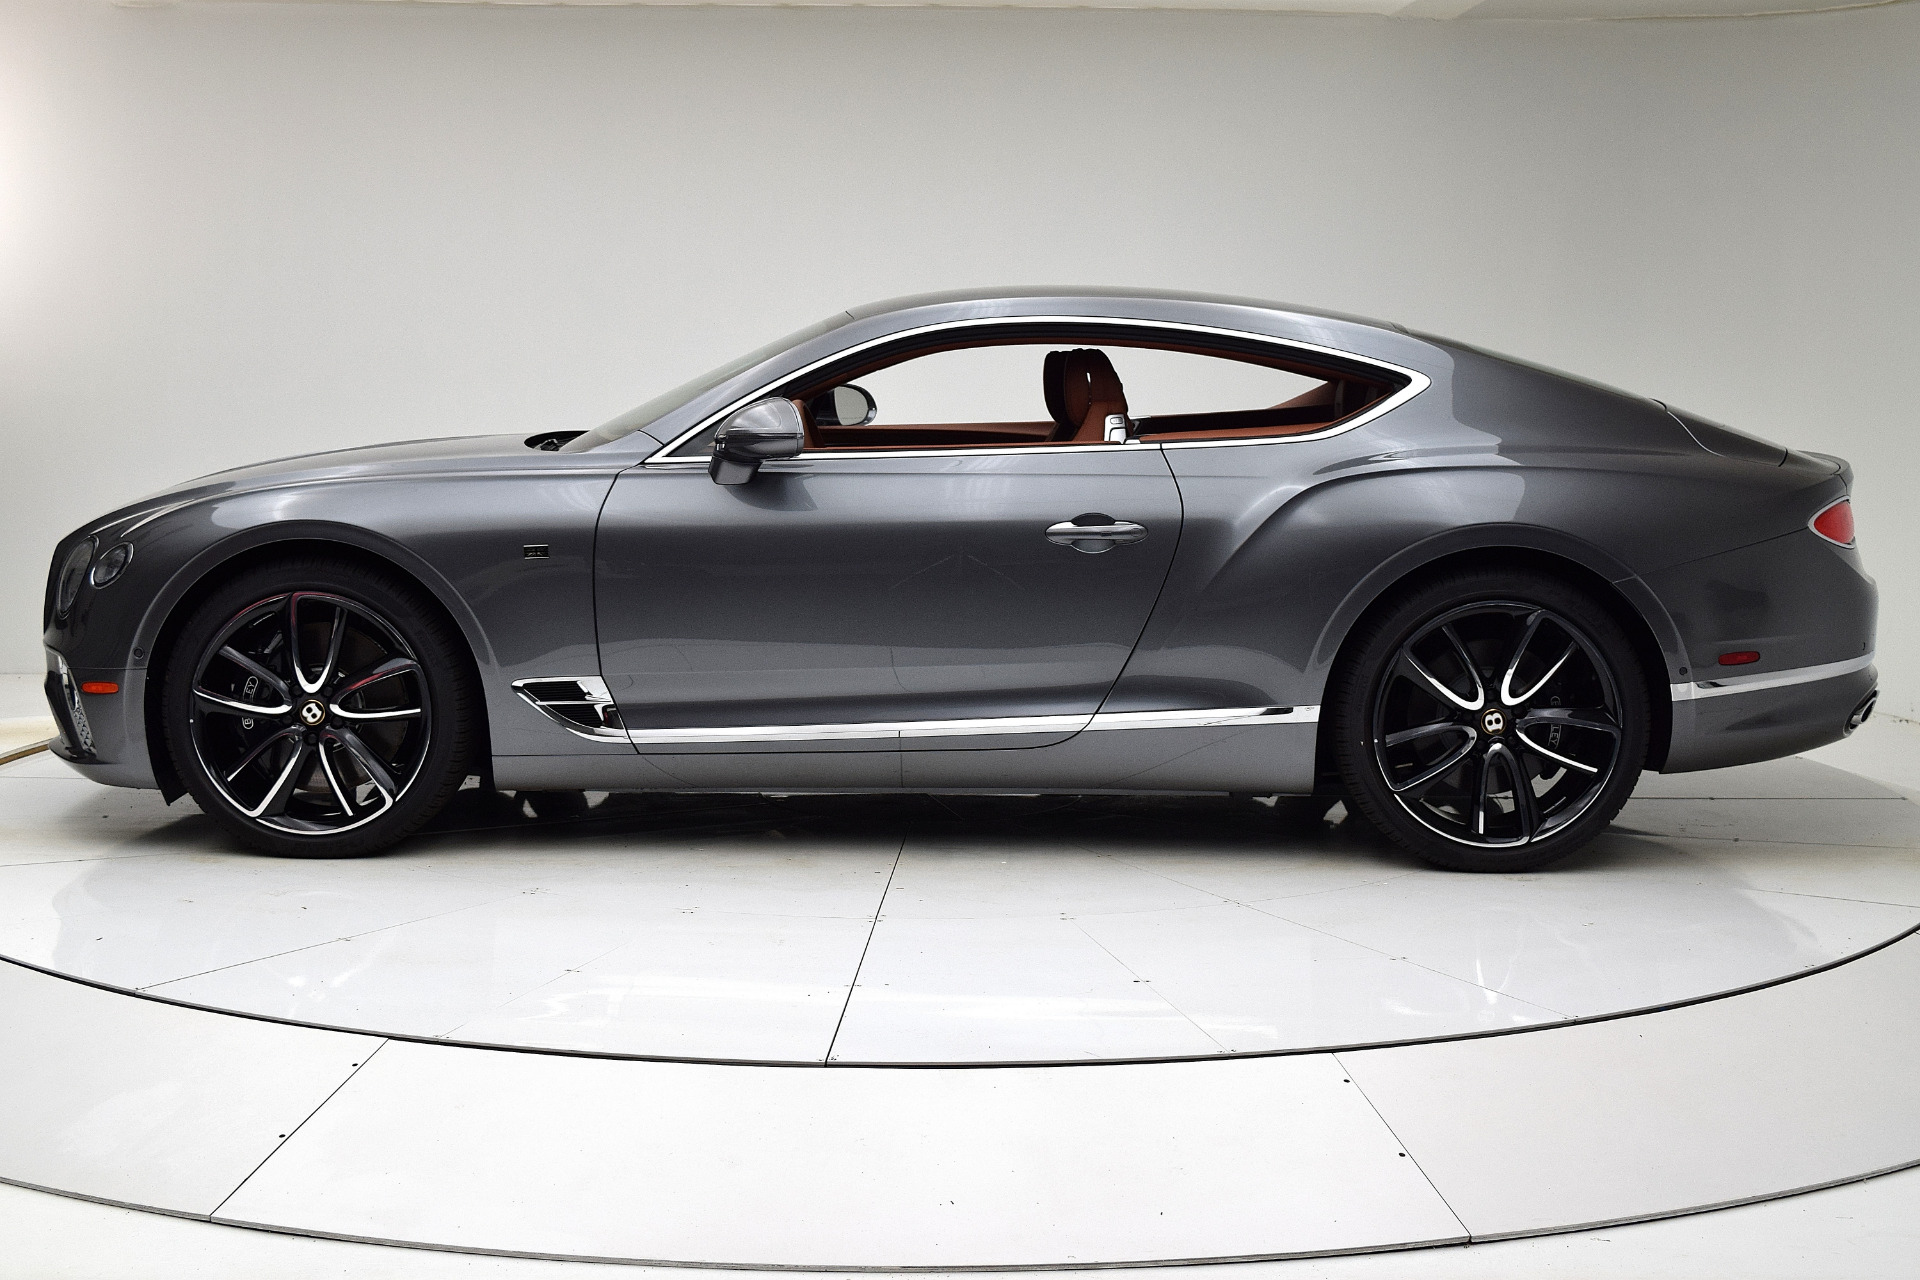 New 2020 Bentley Continental Gt V8 Coupe First Edition For Sale 266 140 Bentley Palmyra N J Stock 20be124